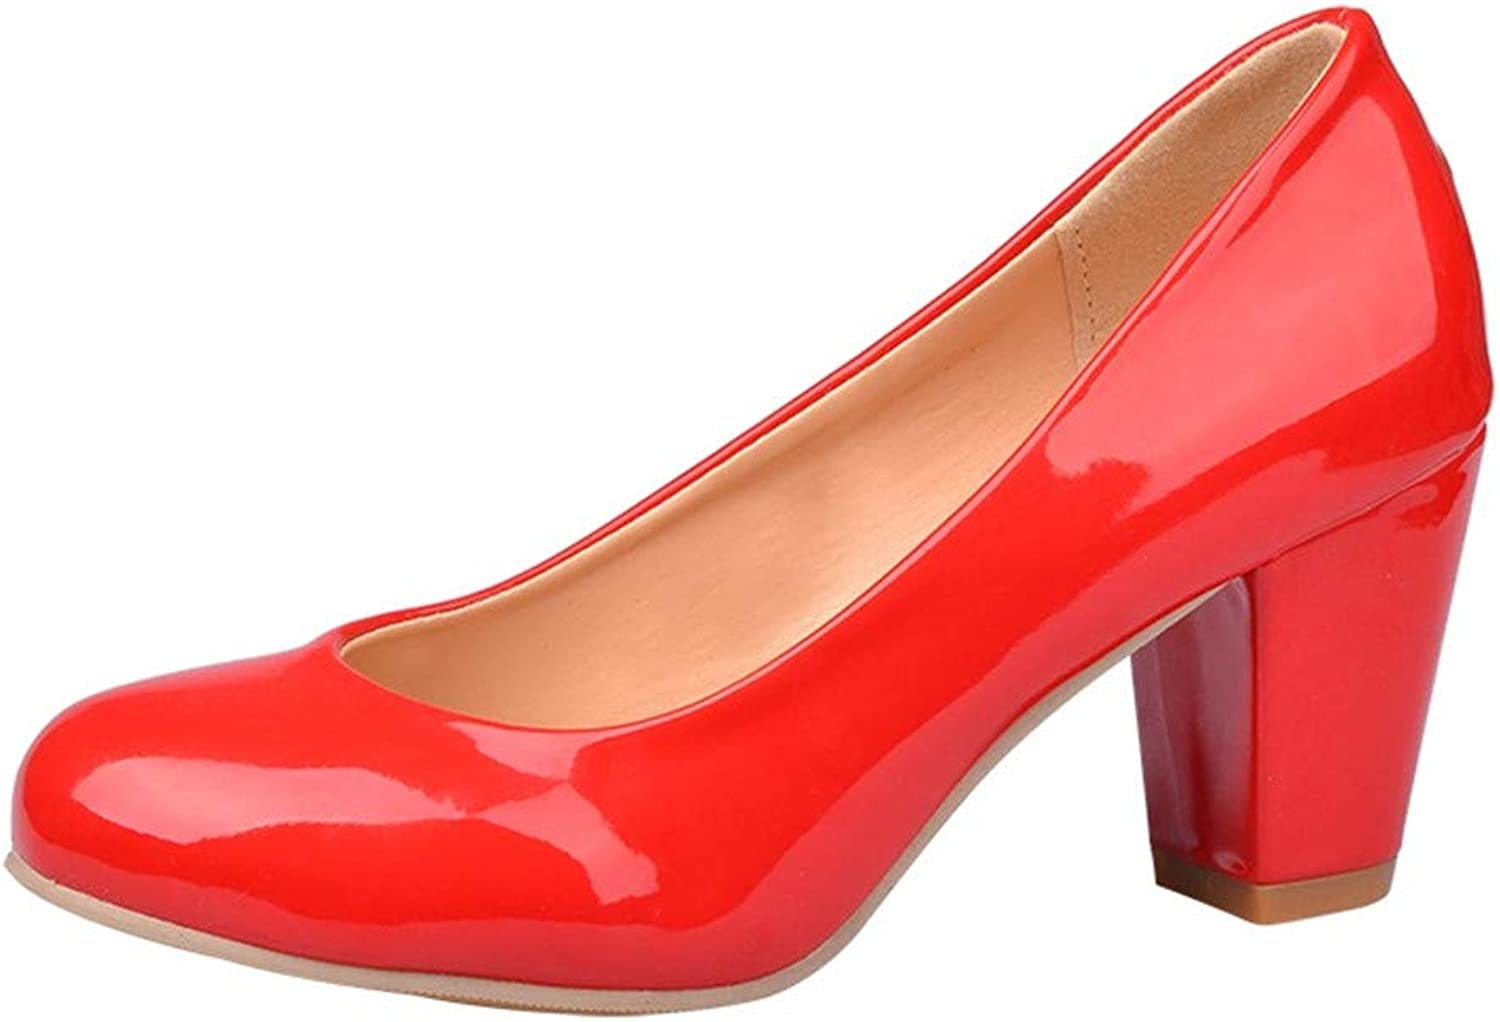 goldencar Fashion Women Pumps Simple Shallow high Heels shoes Round Toe Spring Autumn Single shoes